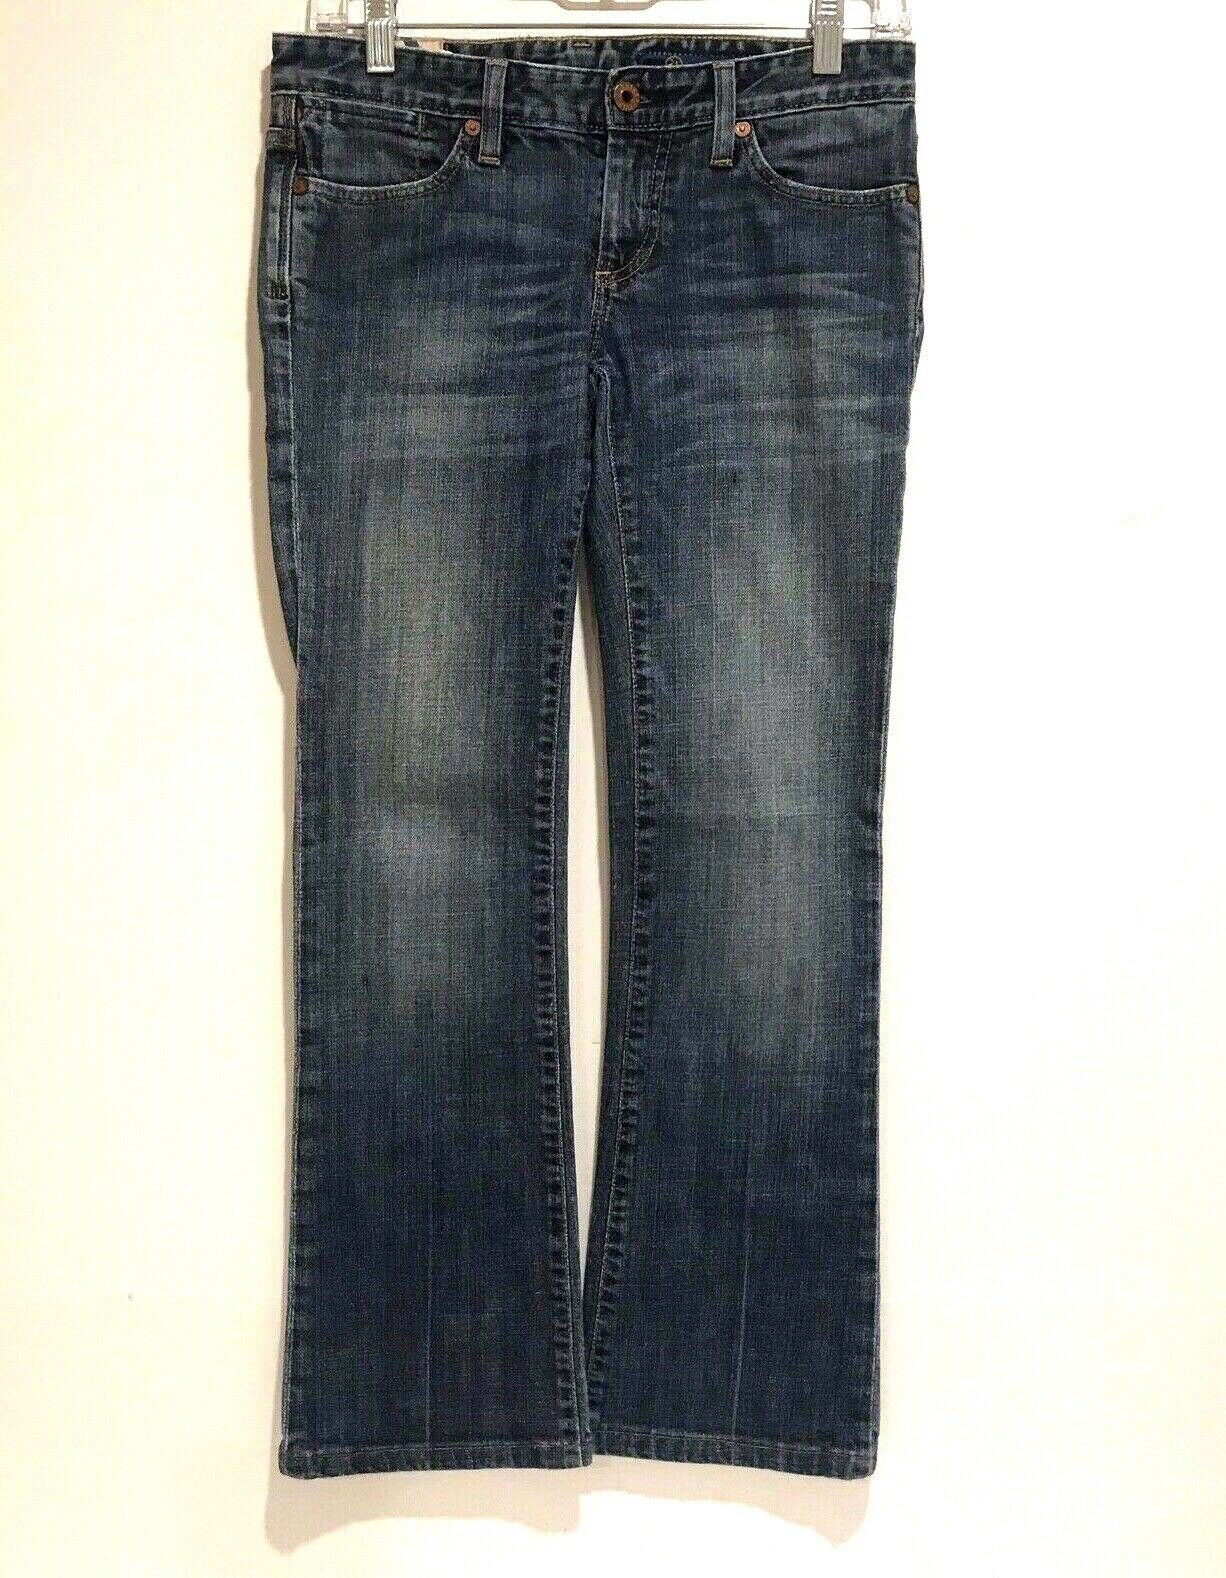 AG Adriano goldschmied Women's Boot Cut Distressed Jeans bluee Denim 25R Stretch